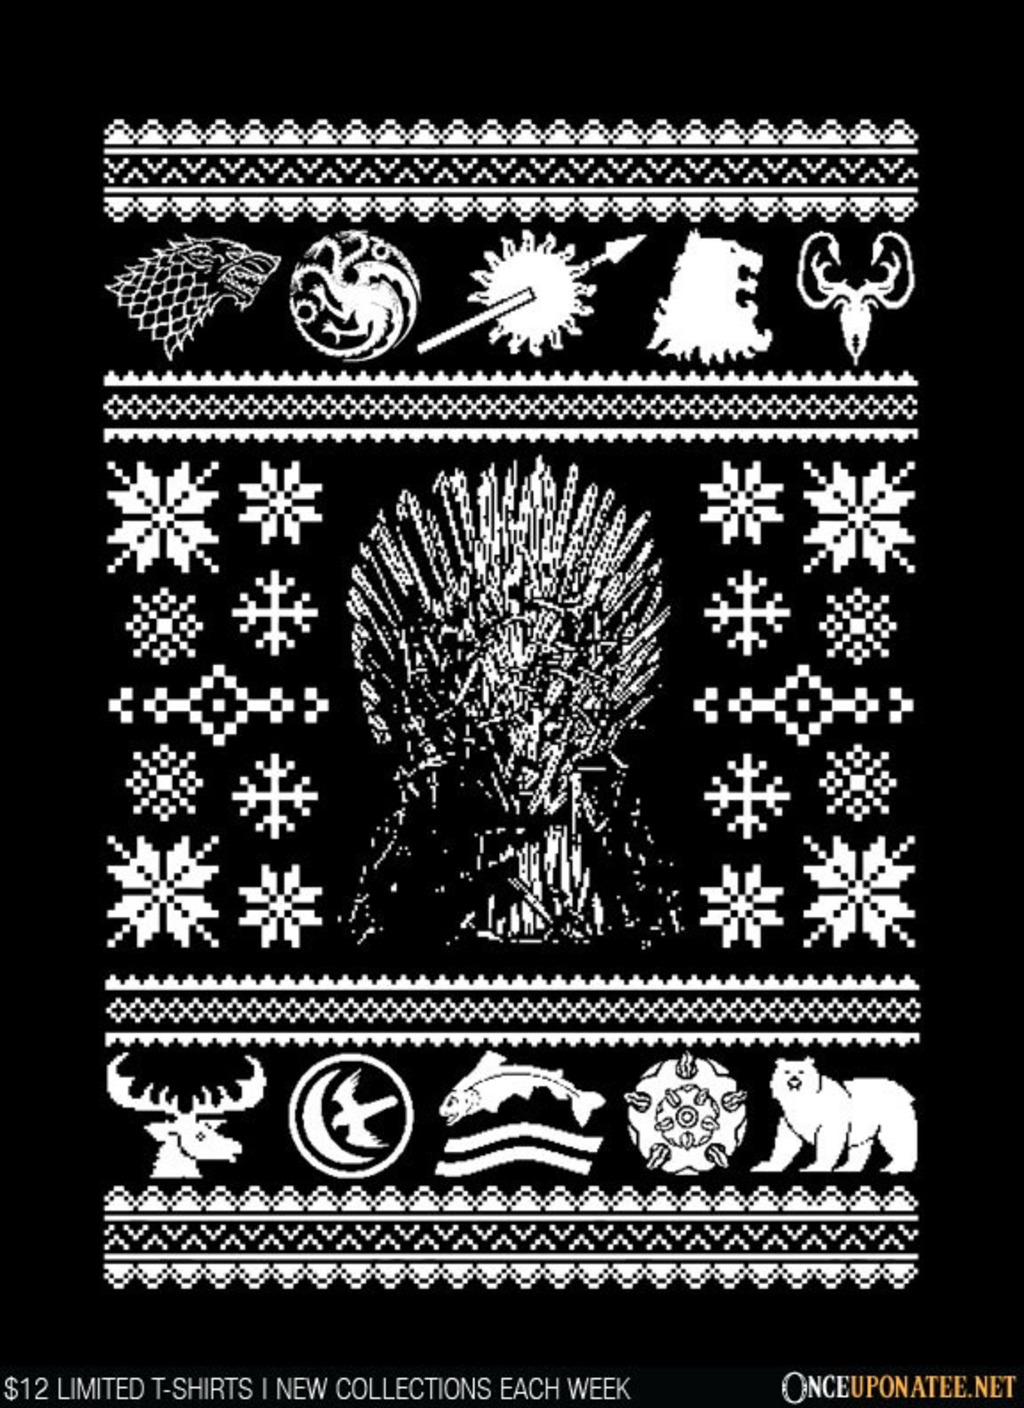 Once Upon a Tee: All I Want for Christmas is Westeros